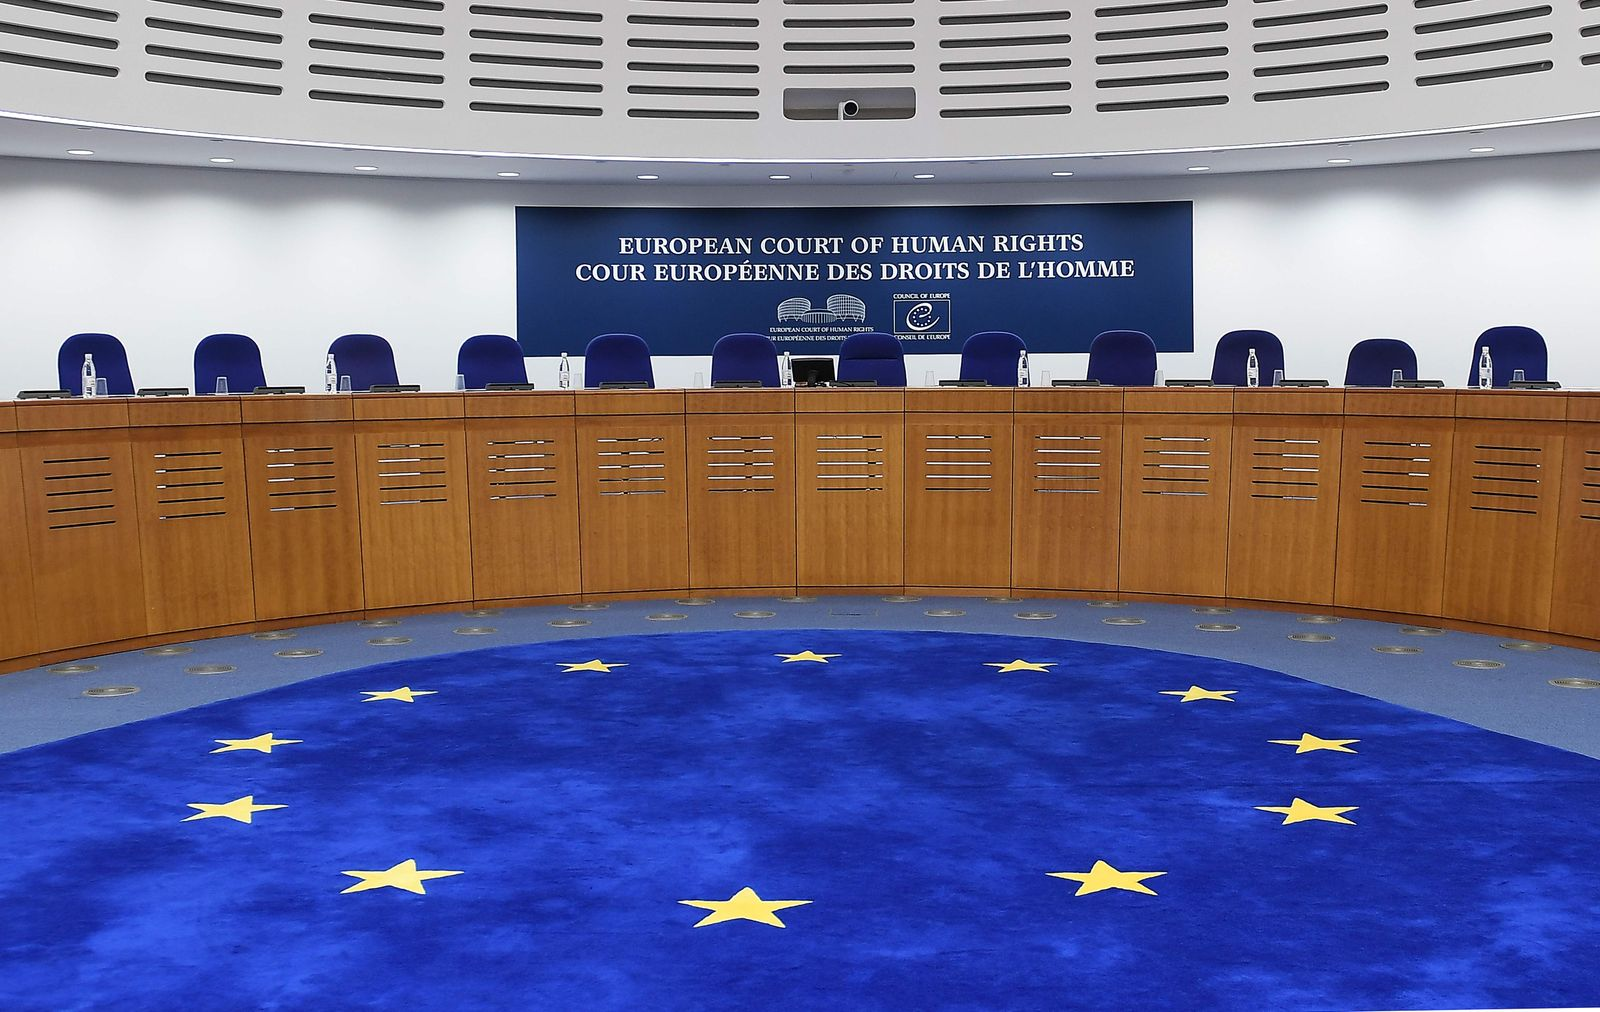 FRANCE-ITALY-EUROPE-POLITICS-COURT-HUMAN-RIGHTS